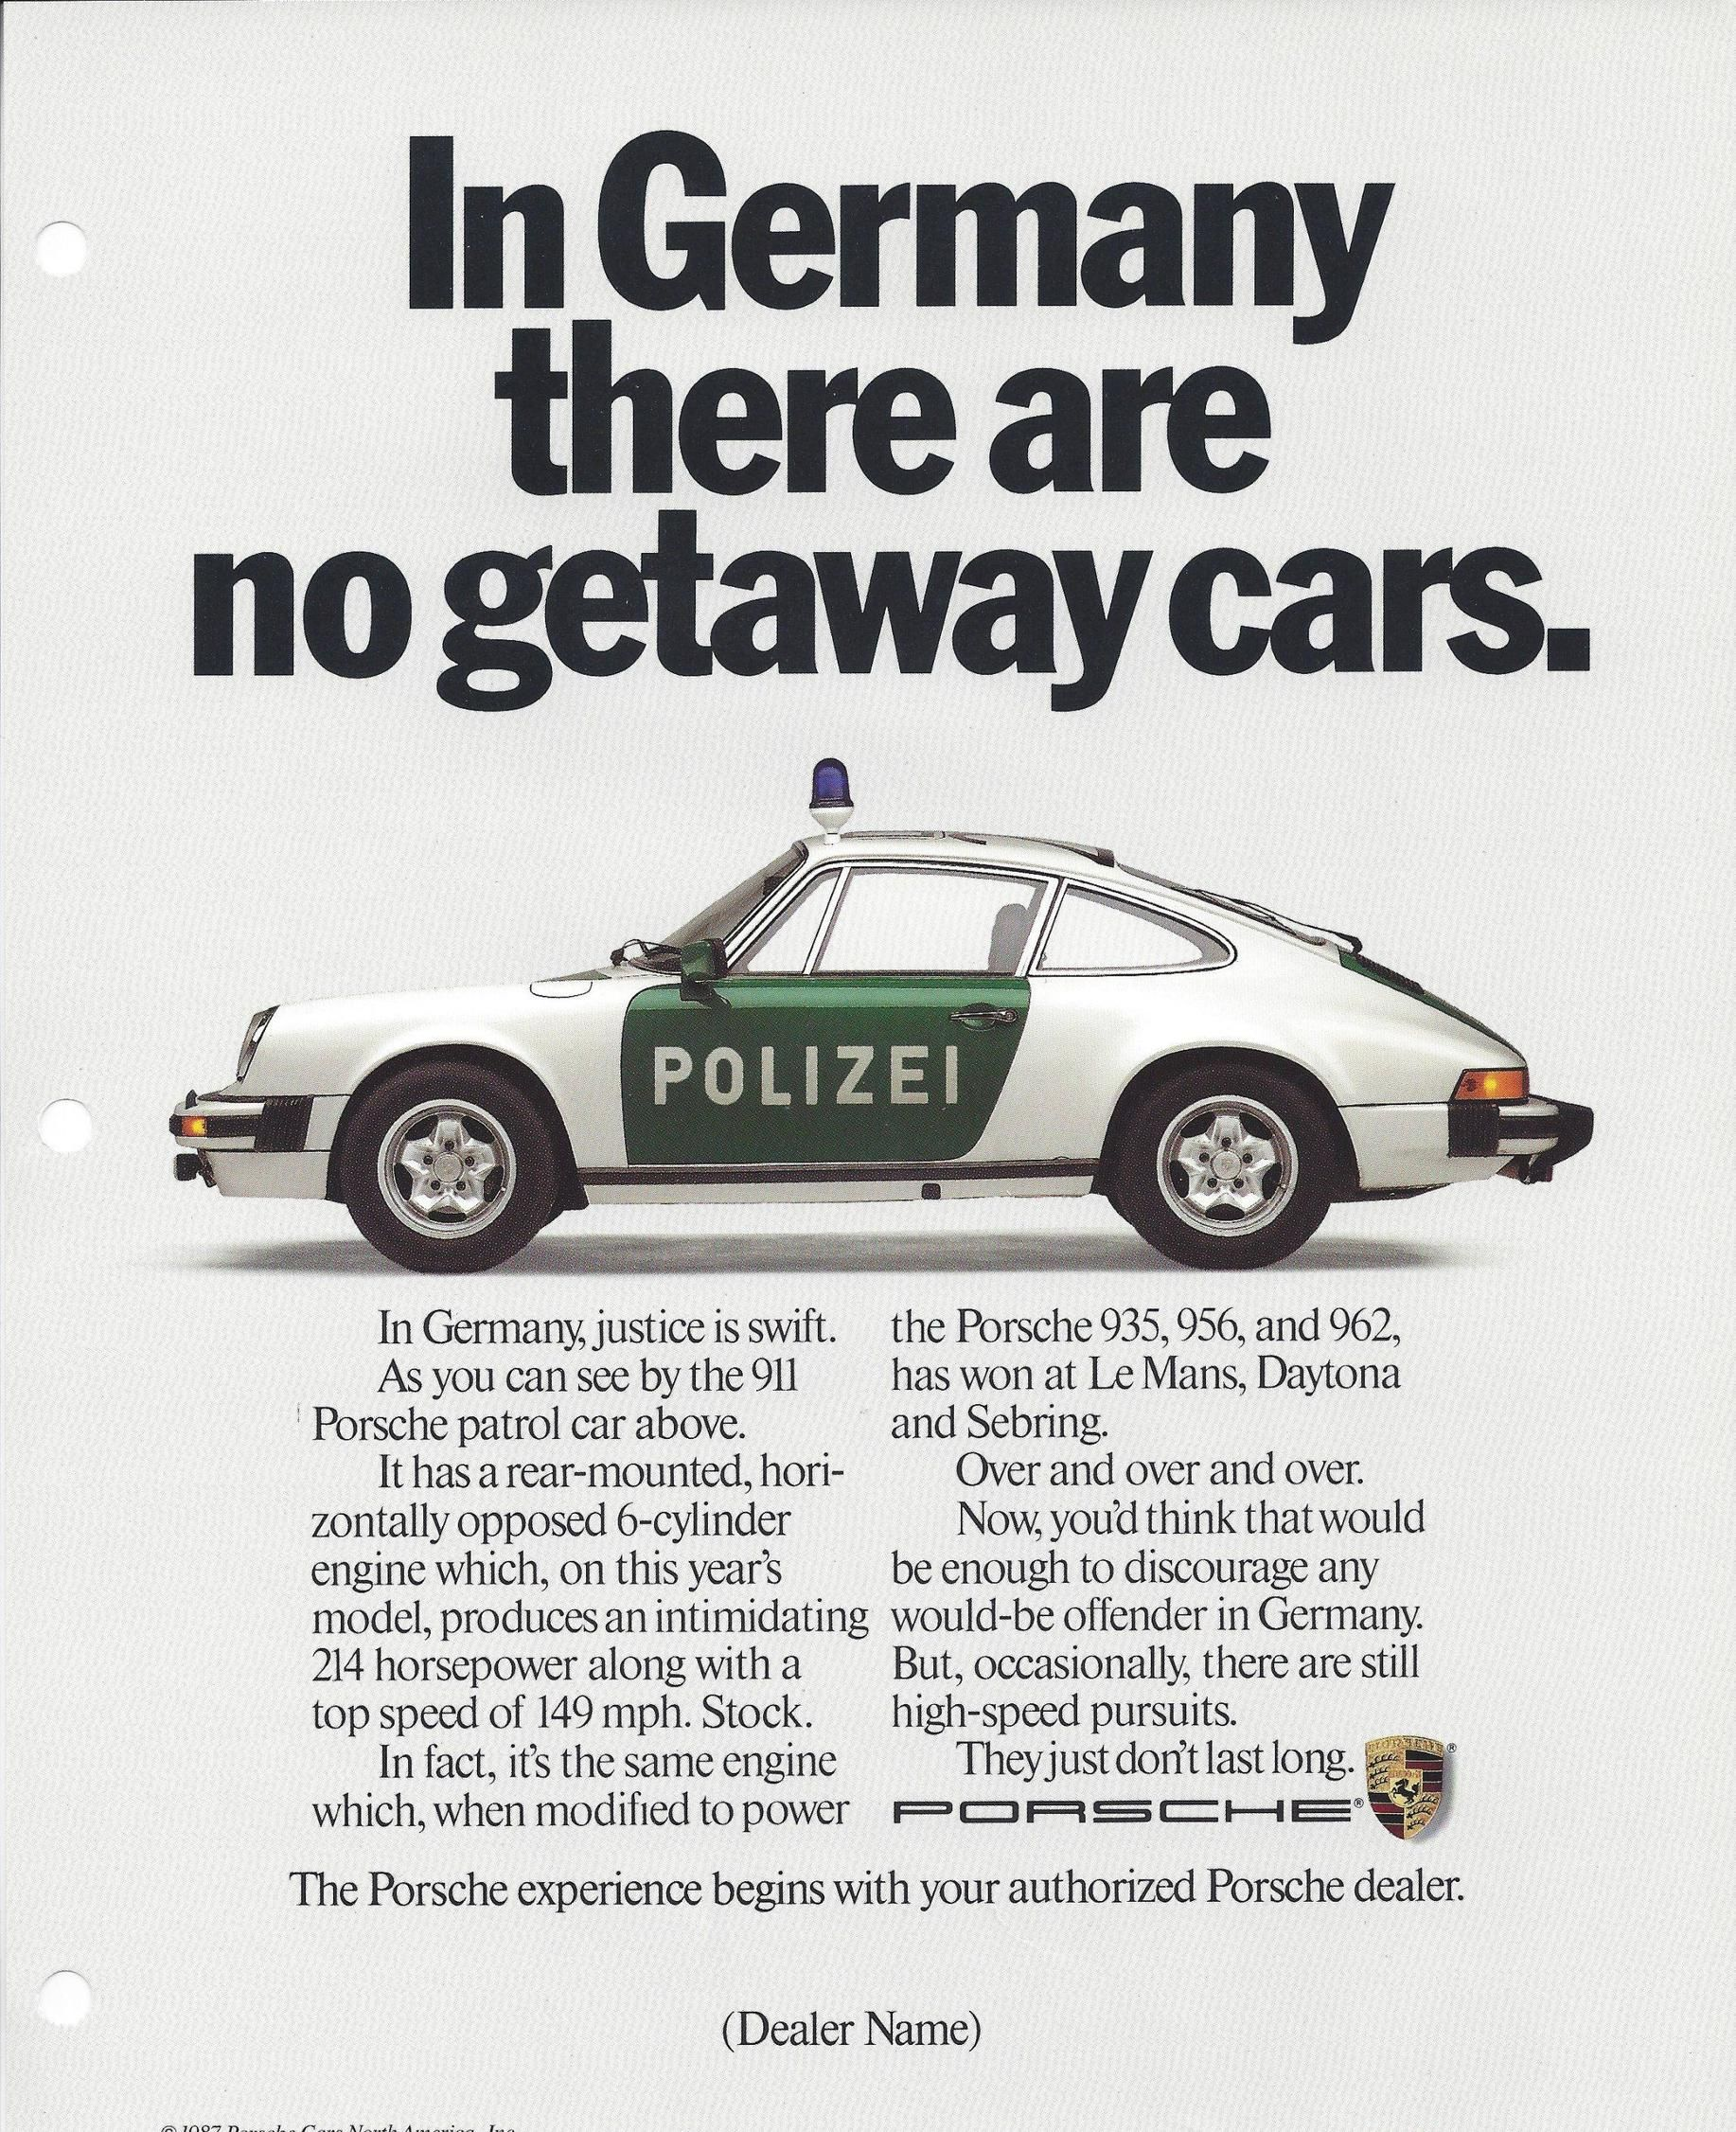 The Best Porsche Ads of All Time: In Germany, There Are No Getaway Cars